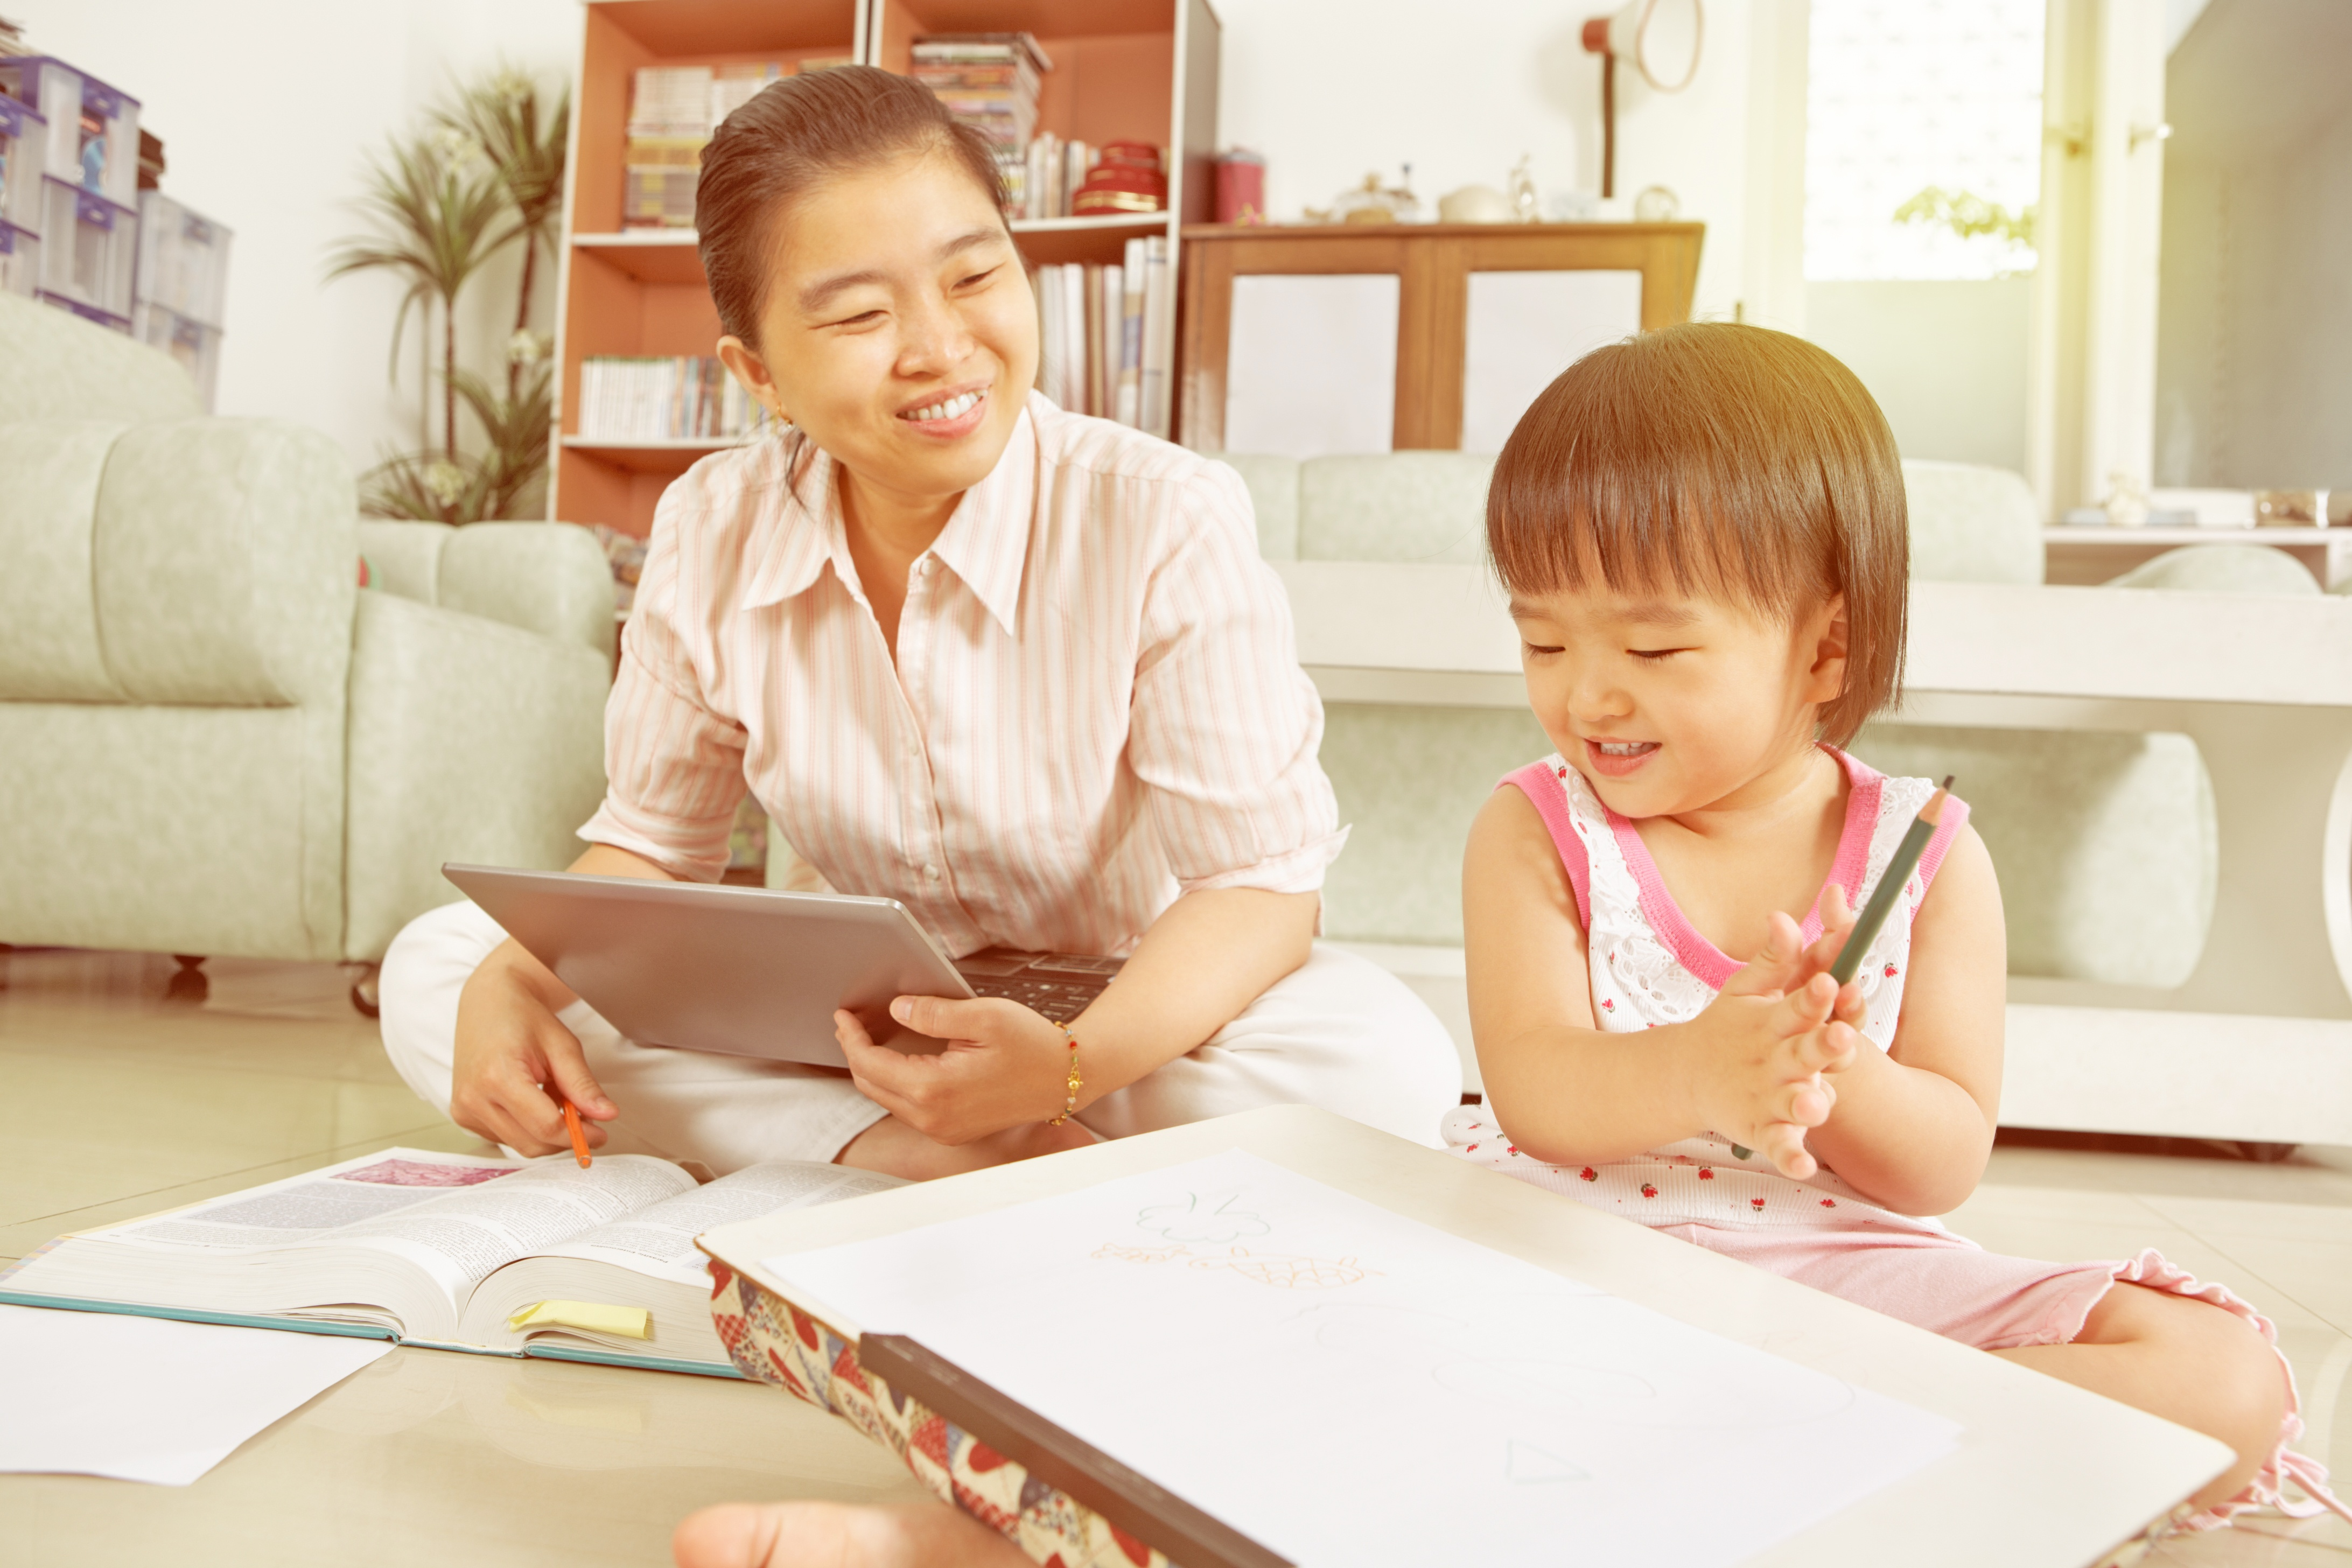 We're sharing the challenges faced by caregivers so help you better understand your home helper.